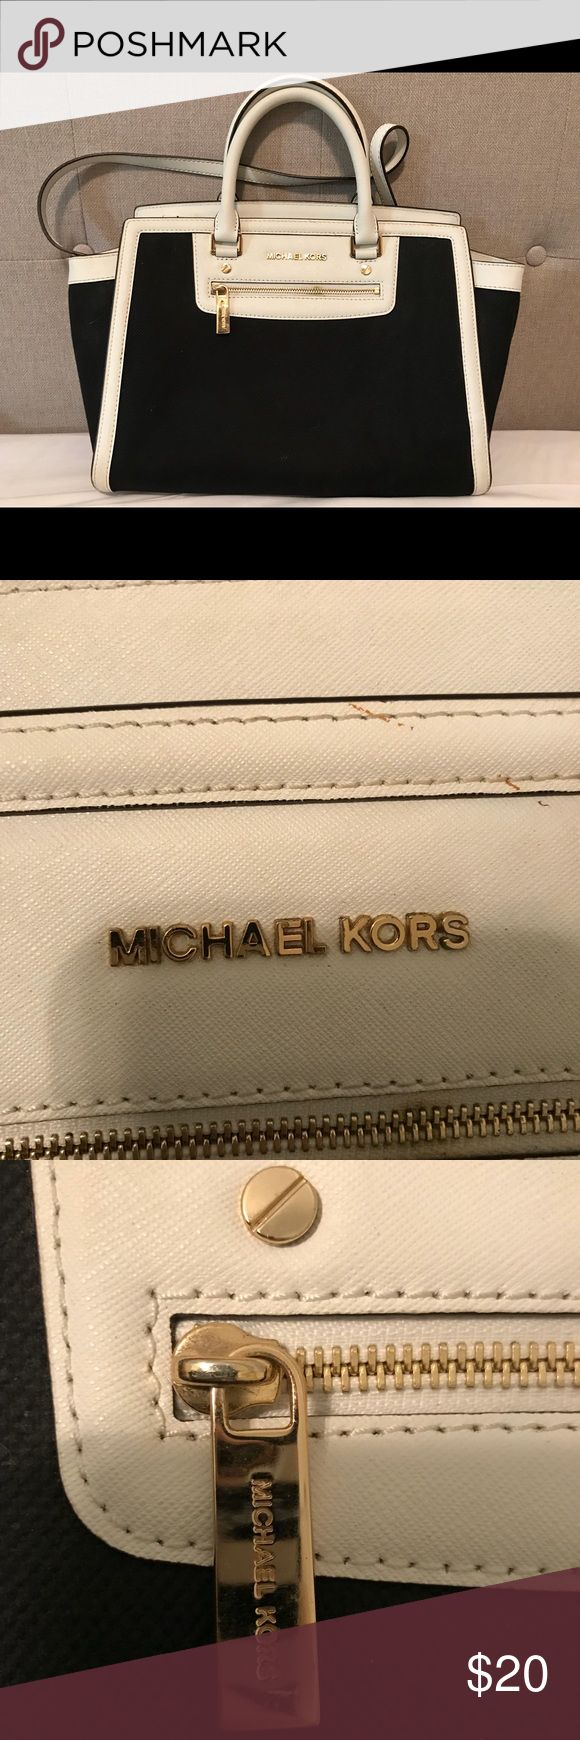 👜MICHAEL KORS BAG PRICED TO SELL👜 This old girl has been through a lot! One of my favorite MK bags I've ever owned, which is why she needs some TLC.  I'm sad to see her go, but I'm purging my closet! Make me an offer! Michael Kors Bags